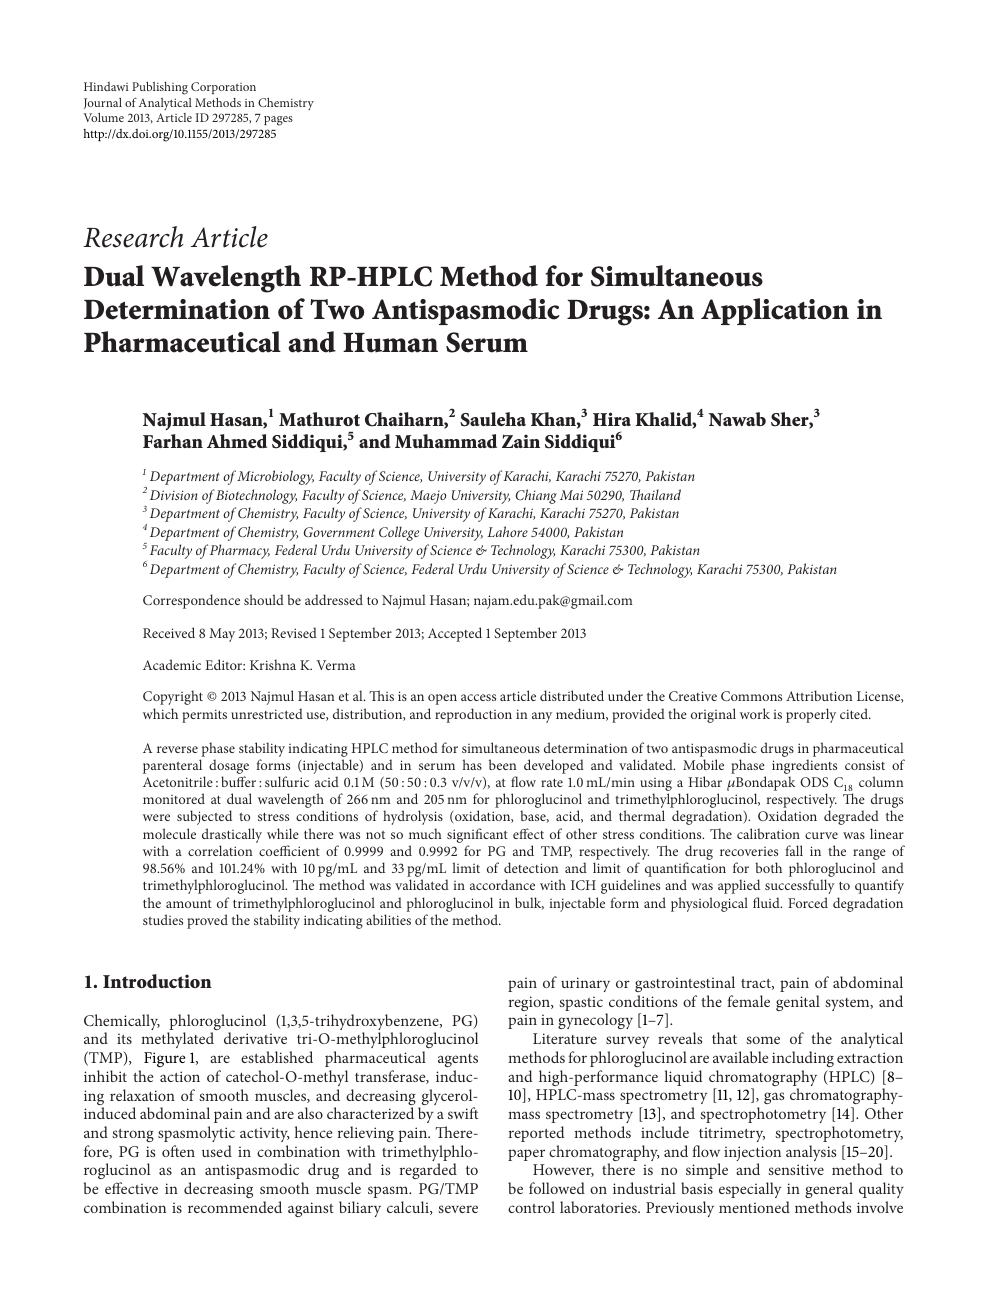 Dual Wavelength RP-HPLC Method for Simultaneous Determination of Two